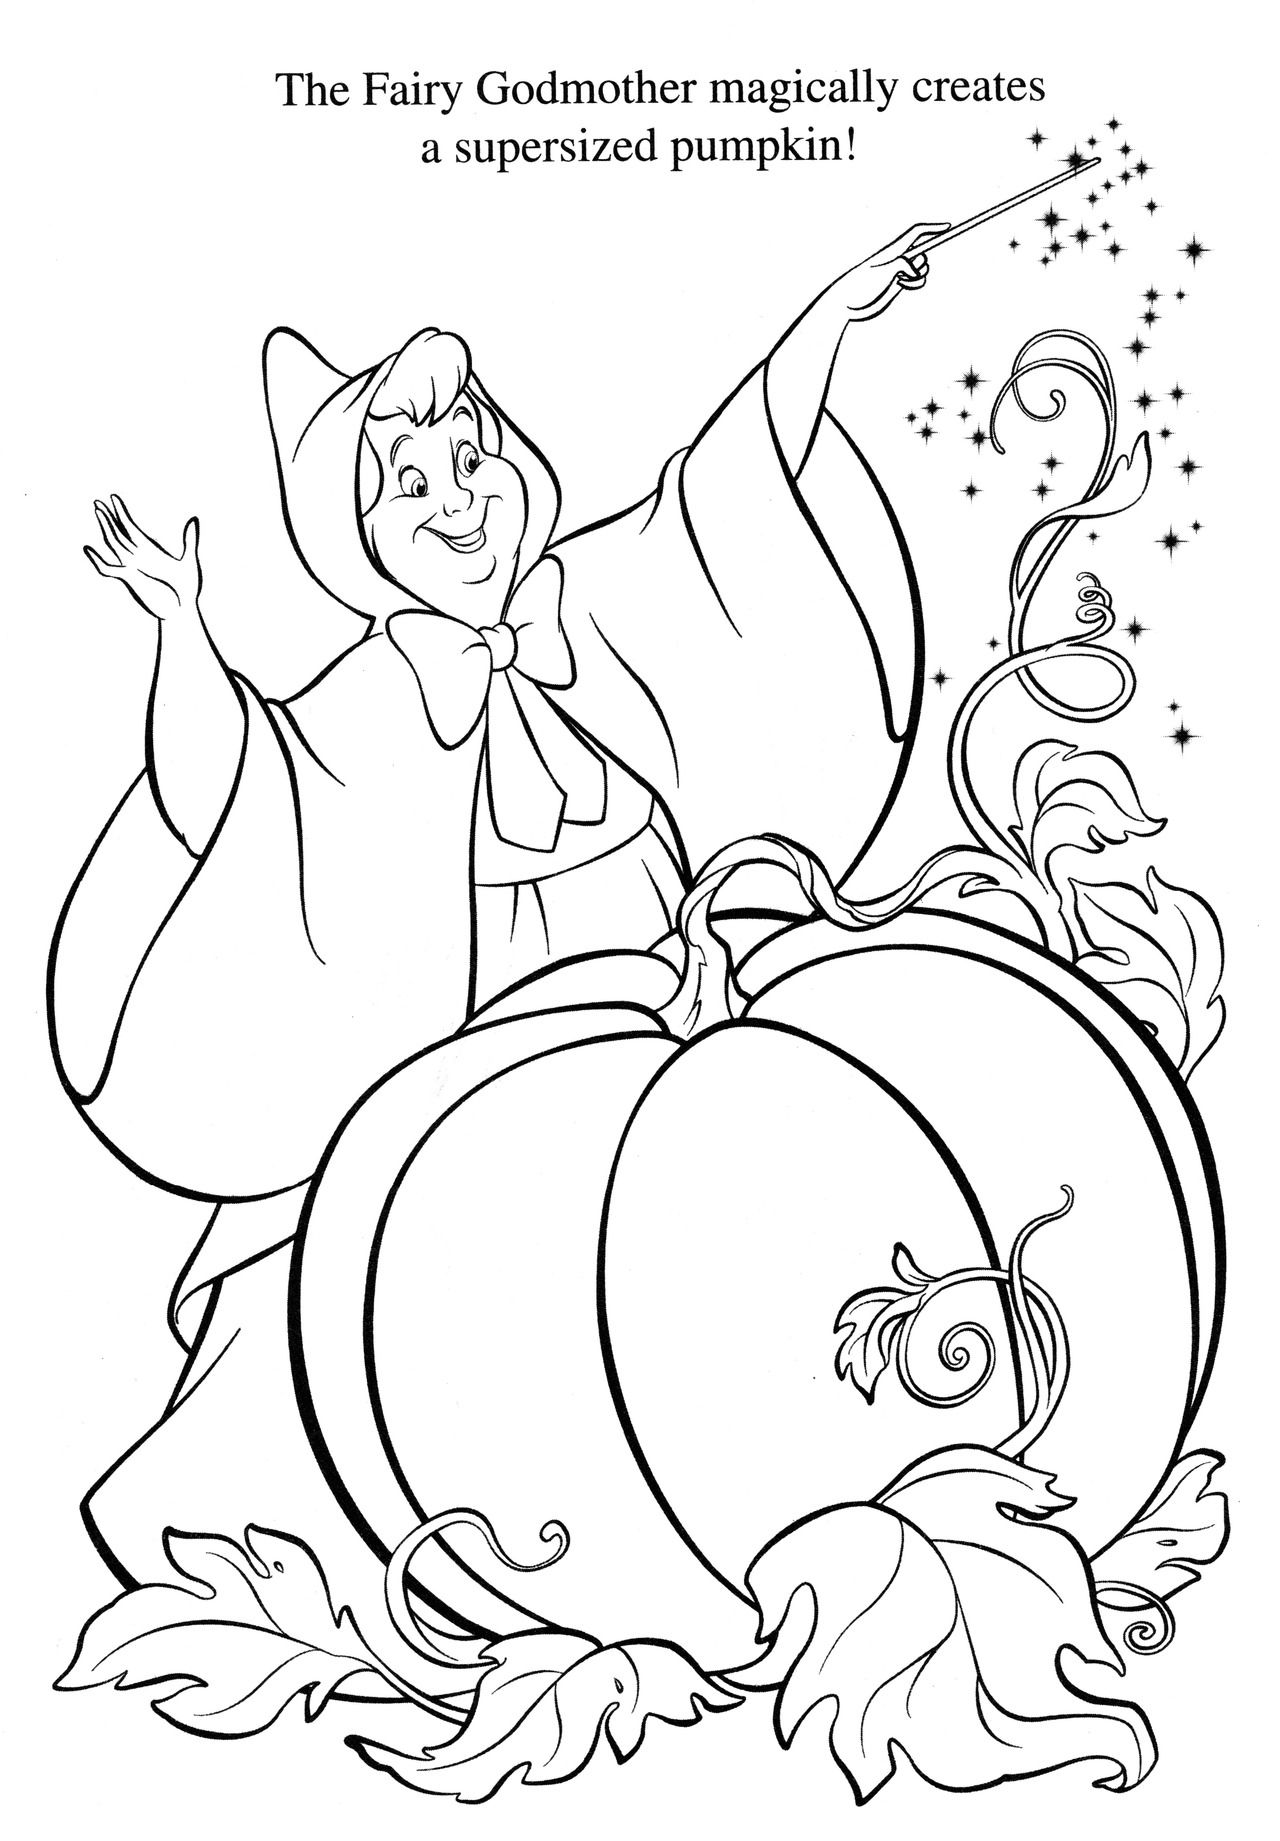 Coloring pictures cinderella - Cinderella Fairy Godmother Coloring Page Kids Coloring Page